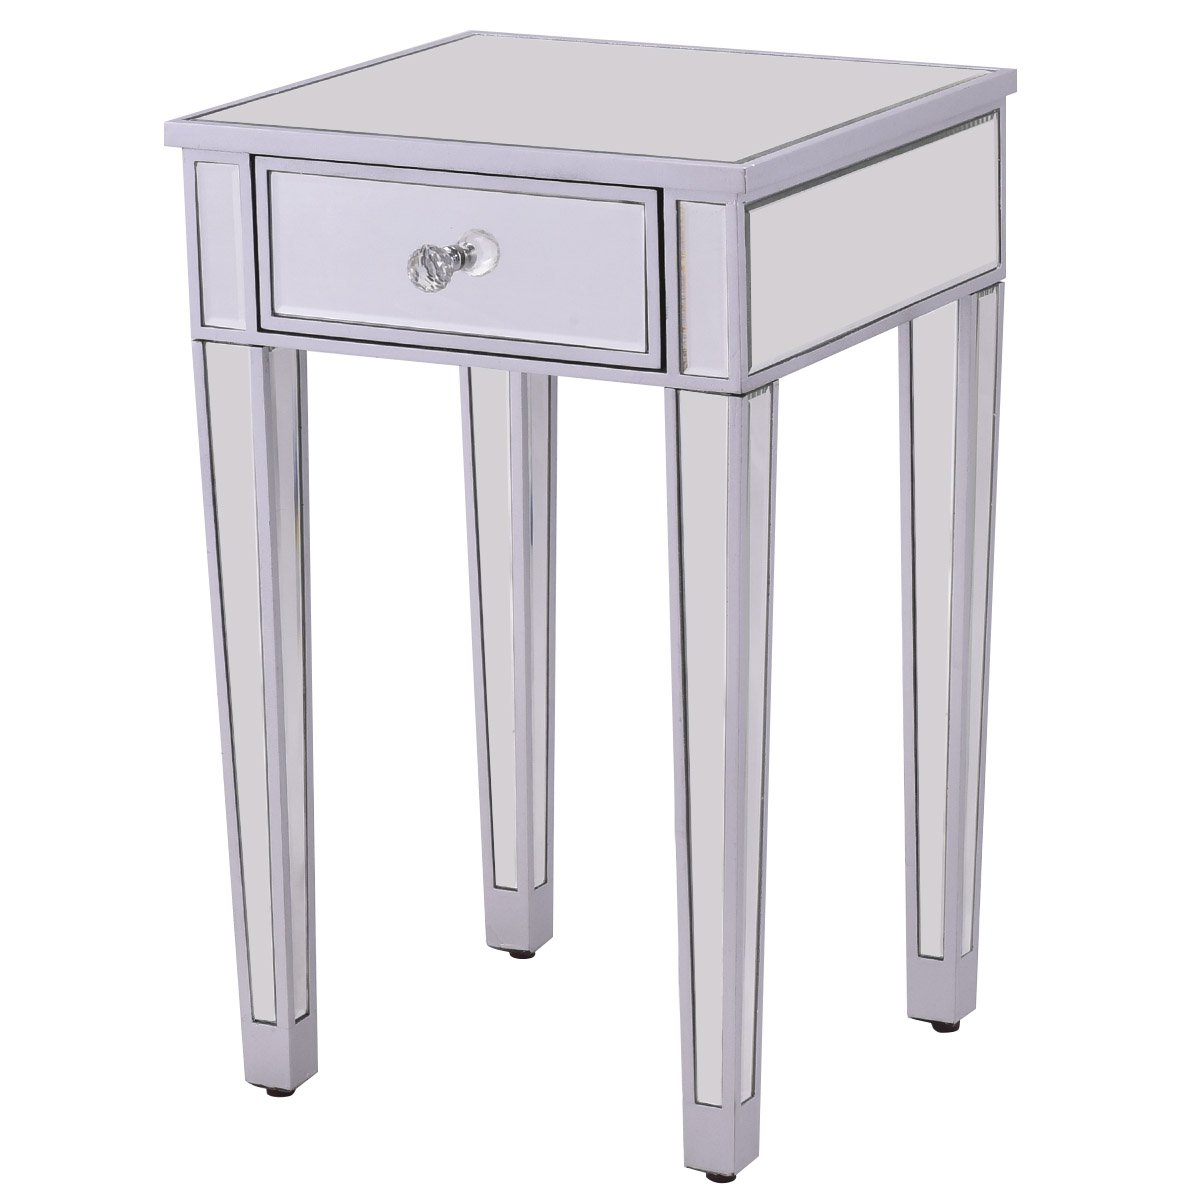 giantex pcs mirrored end table nightstand one mirage accent drawer home bedside storage cabinet silver kitchen dining living room centerpiece ideas distressed blue side drink